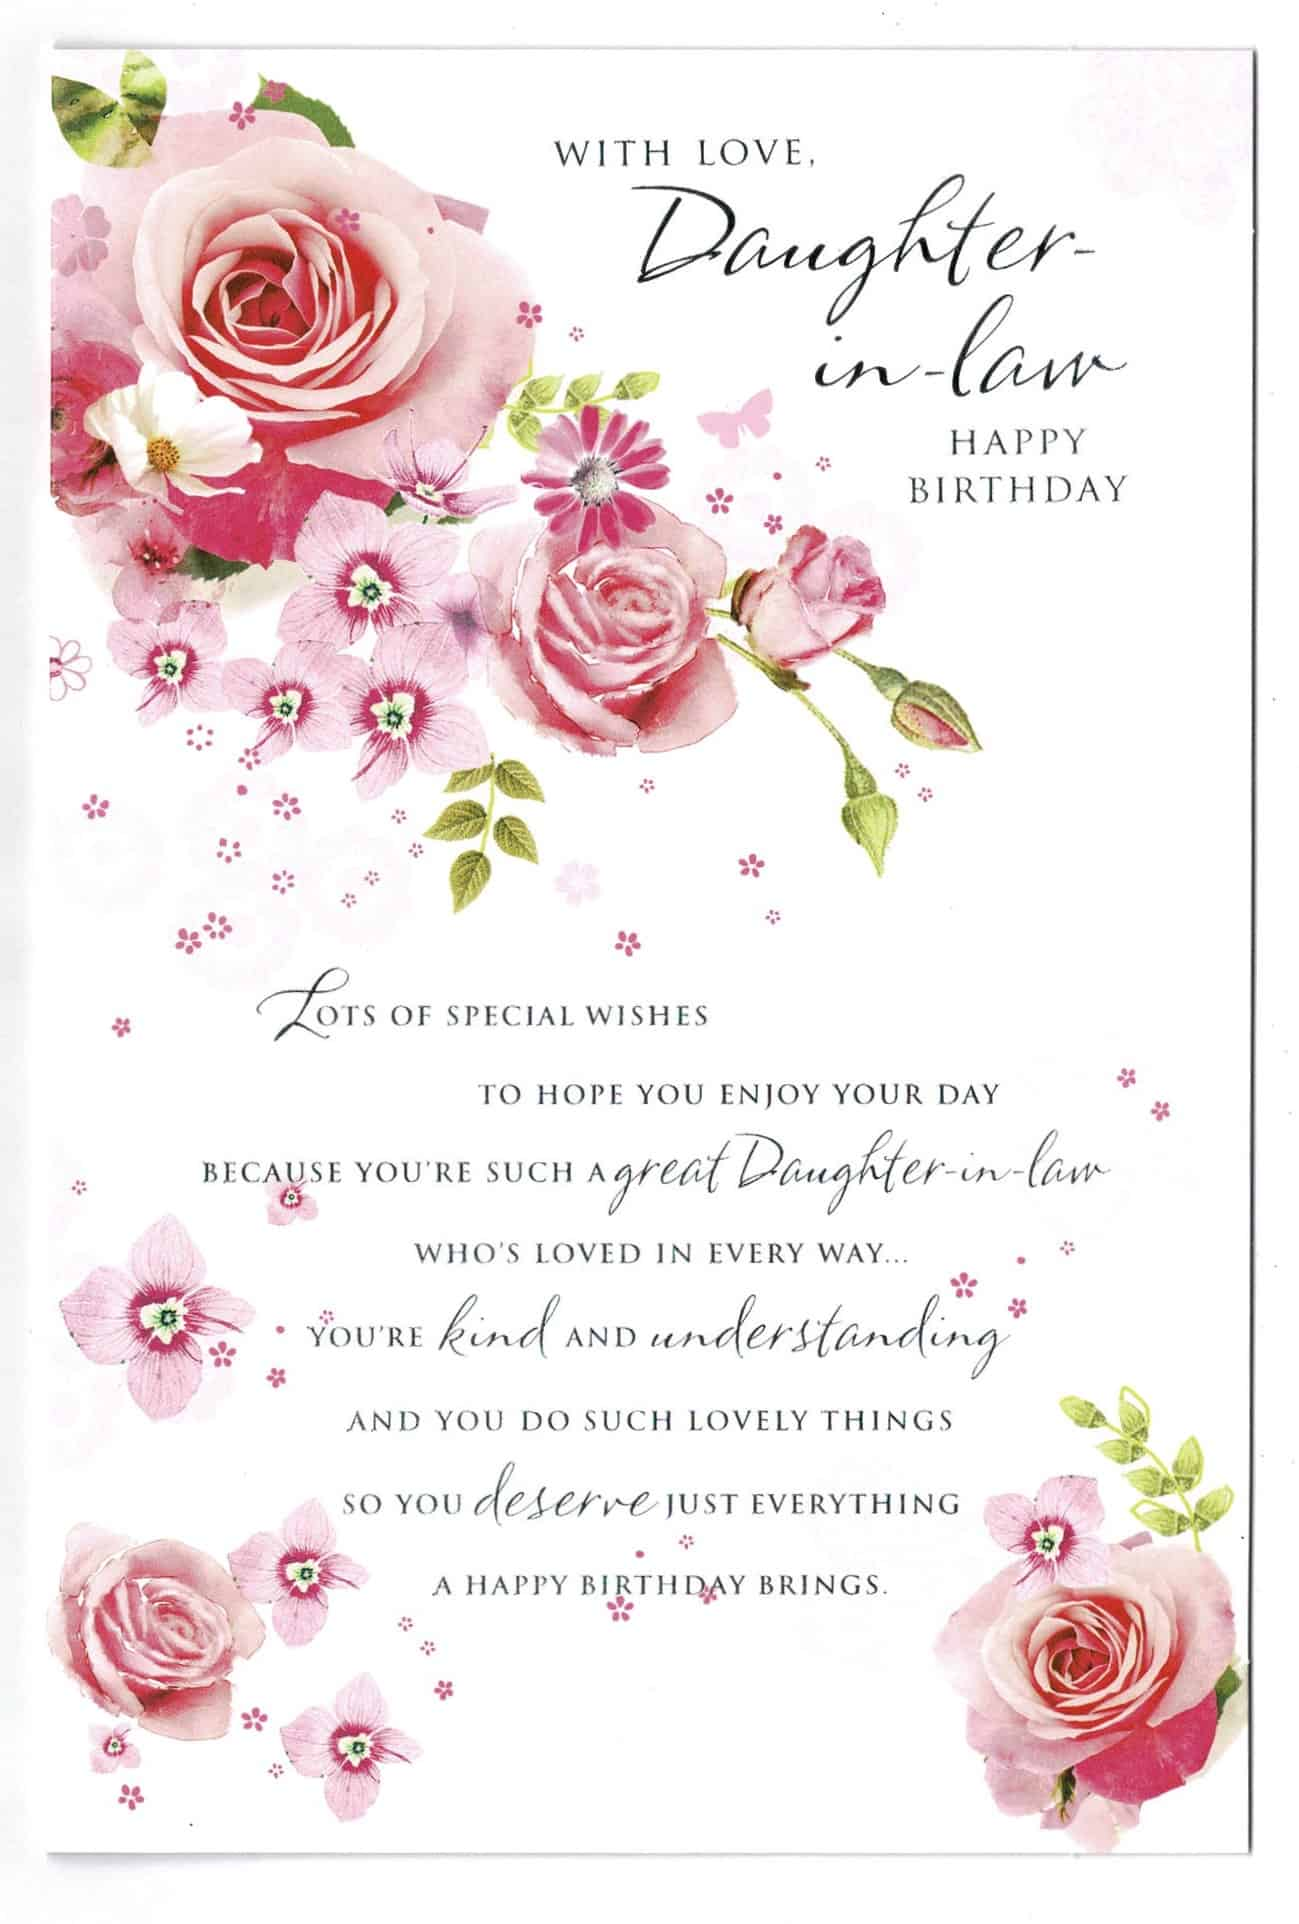 Daughter In Law Birthday Card With Rose And Sentiment Verse Design